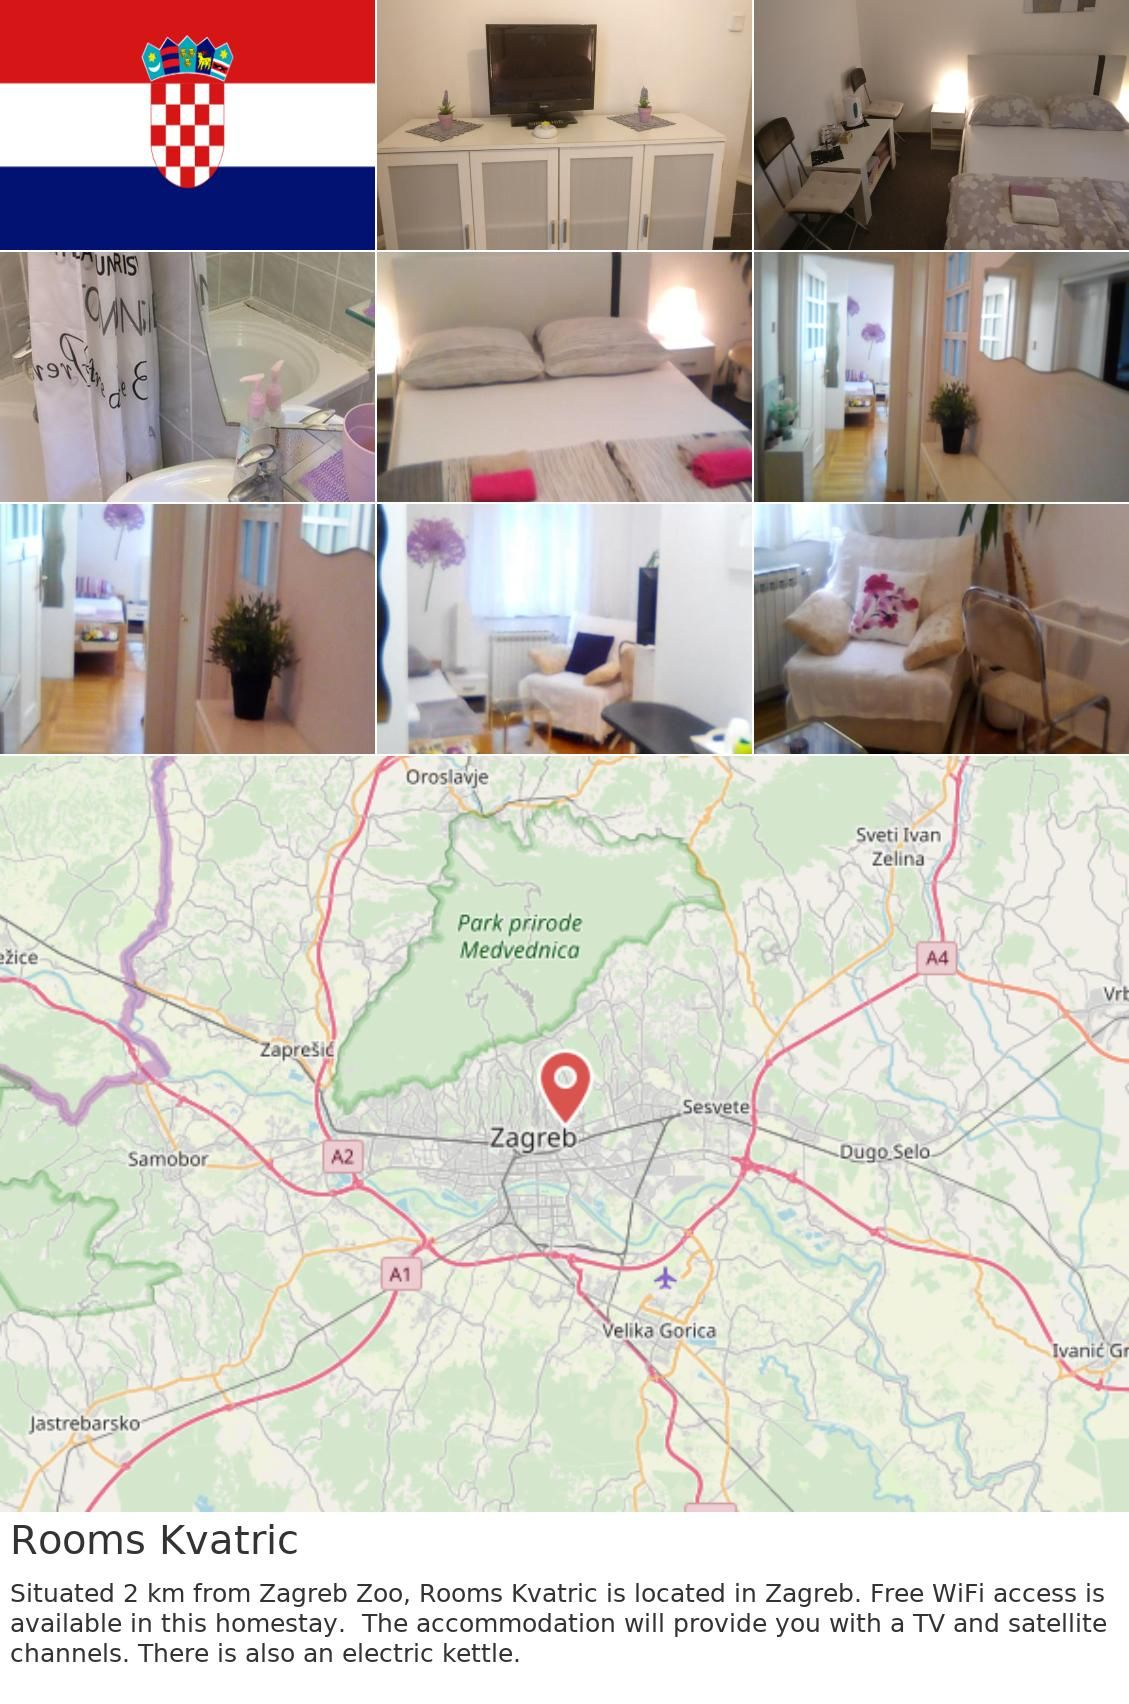 Europe Croatia Zagreb Rooms Kvatric Situated 2 Km From Zagreb Zoo Rooms Kvatric Is Located In Zagreb Free Wifi Access Is Available In This Homestay The